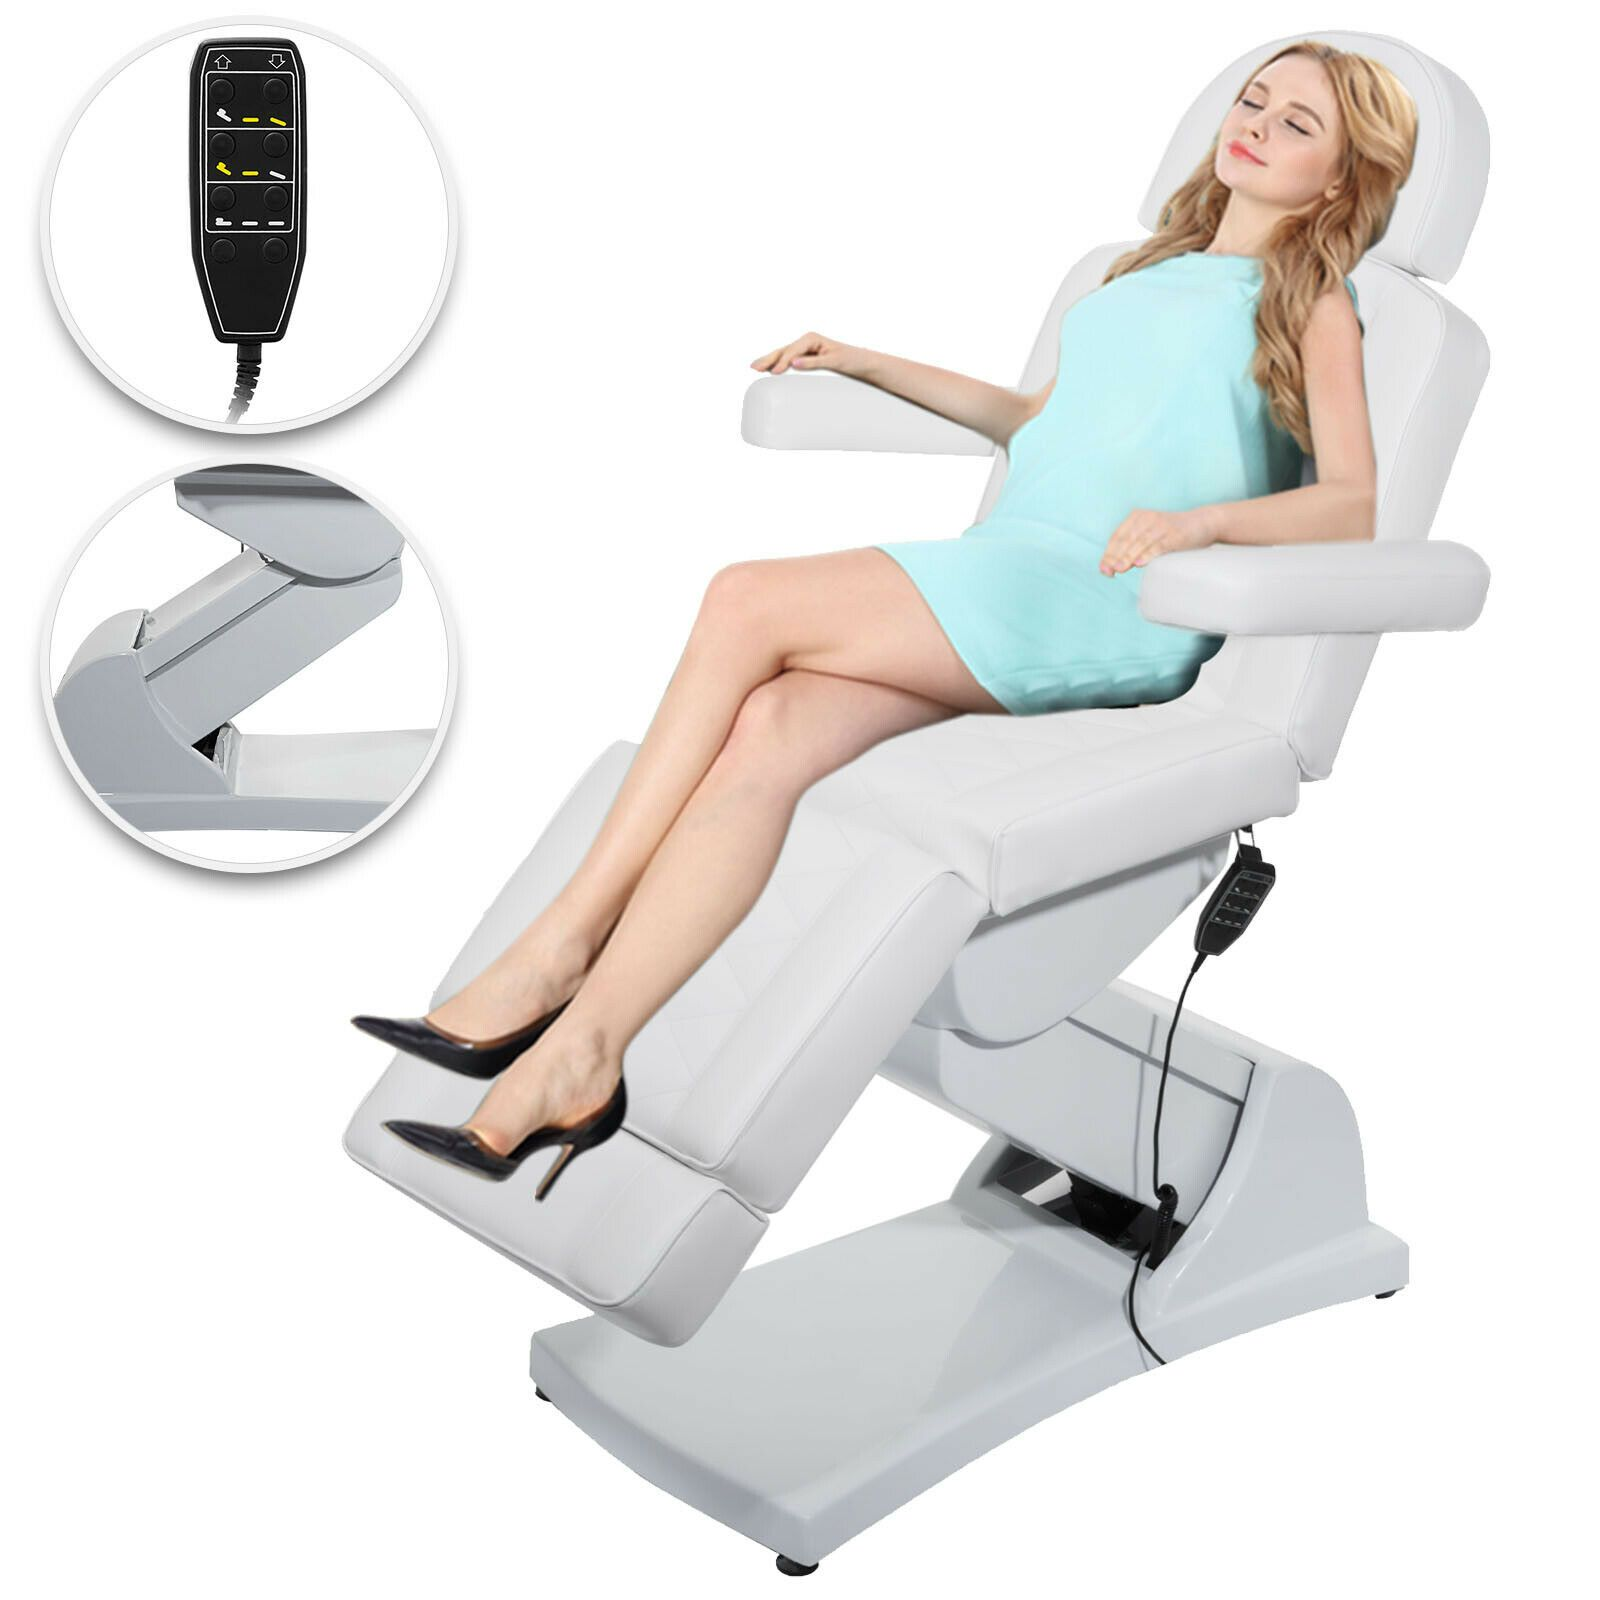 Electric Facial Chair In 2020 Massage Chair Massage Table Chair